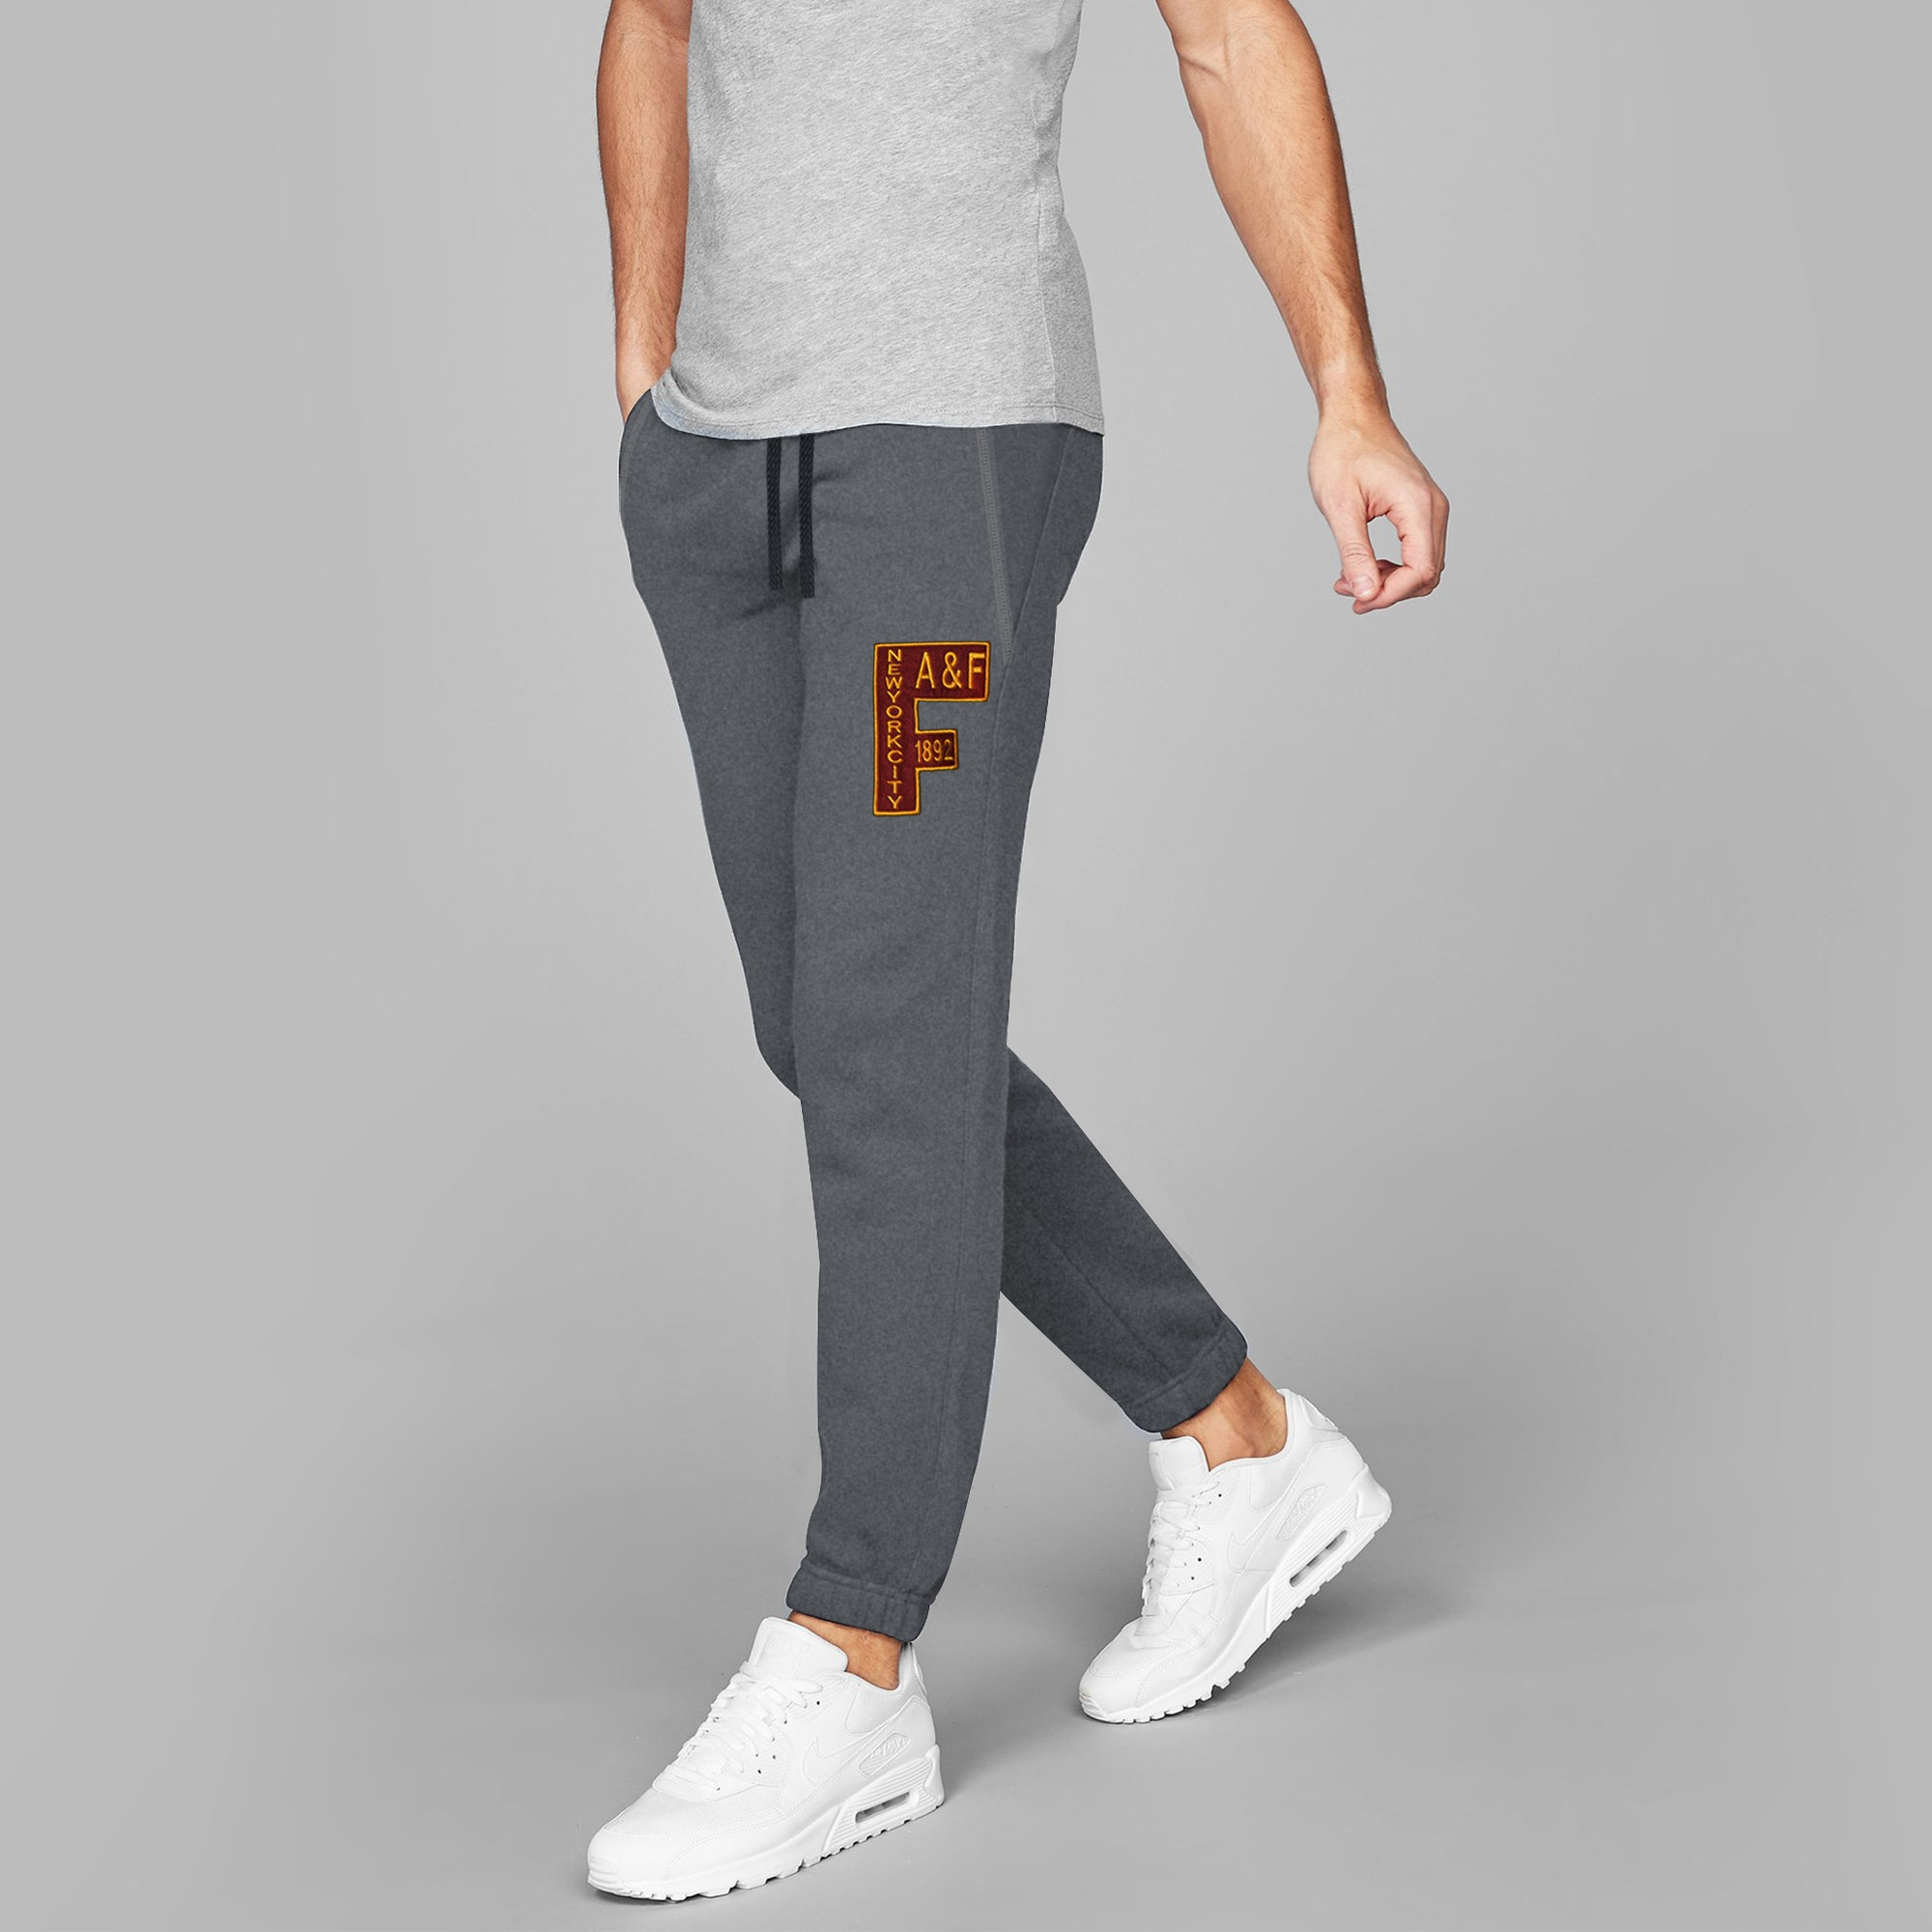 A&F Fleece Slim Fit Gathering Bottom Jogger Trouser For Men-Charcoal Melange-BE7848